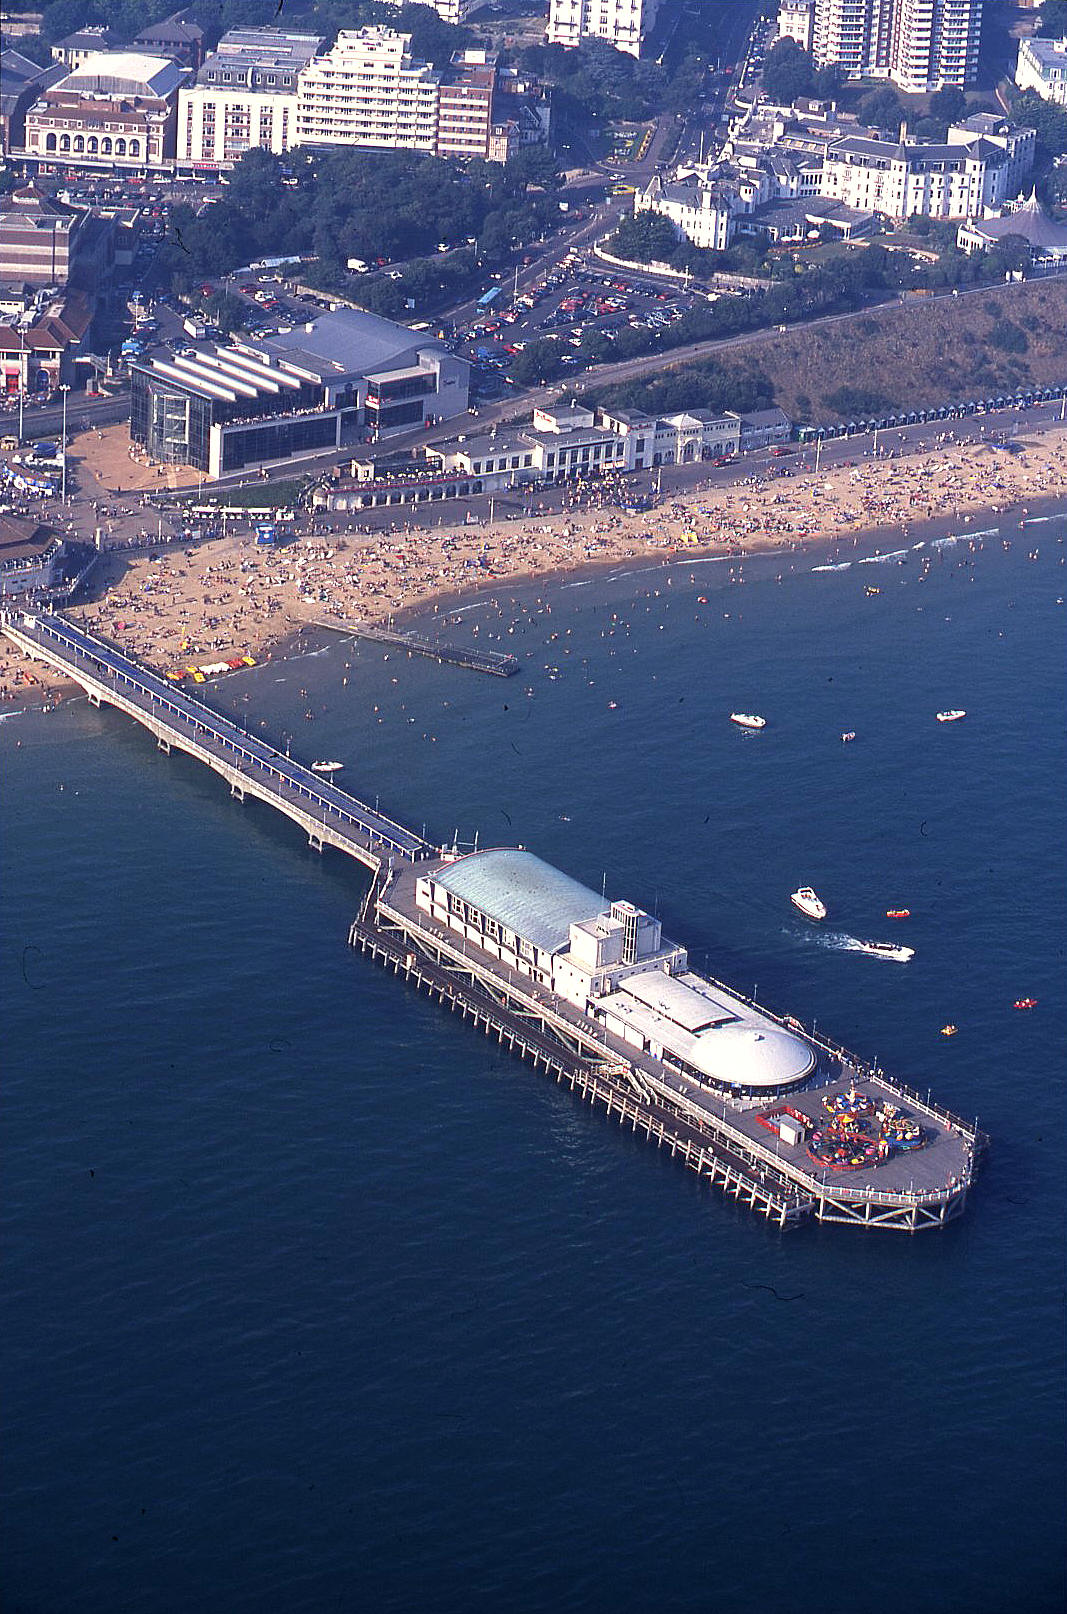 Bournemouth pier in 2001